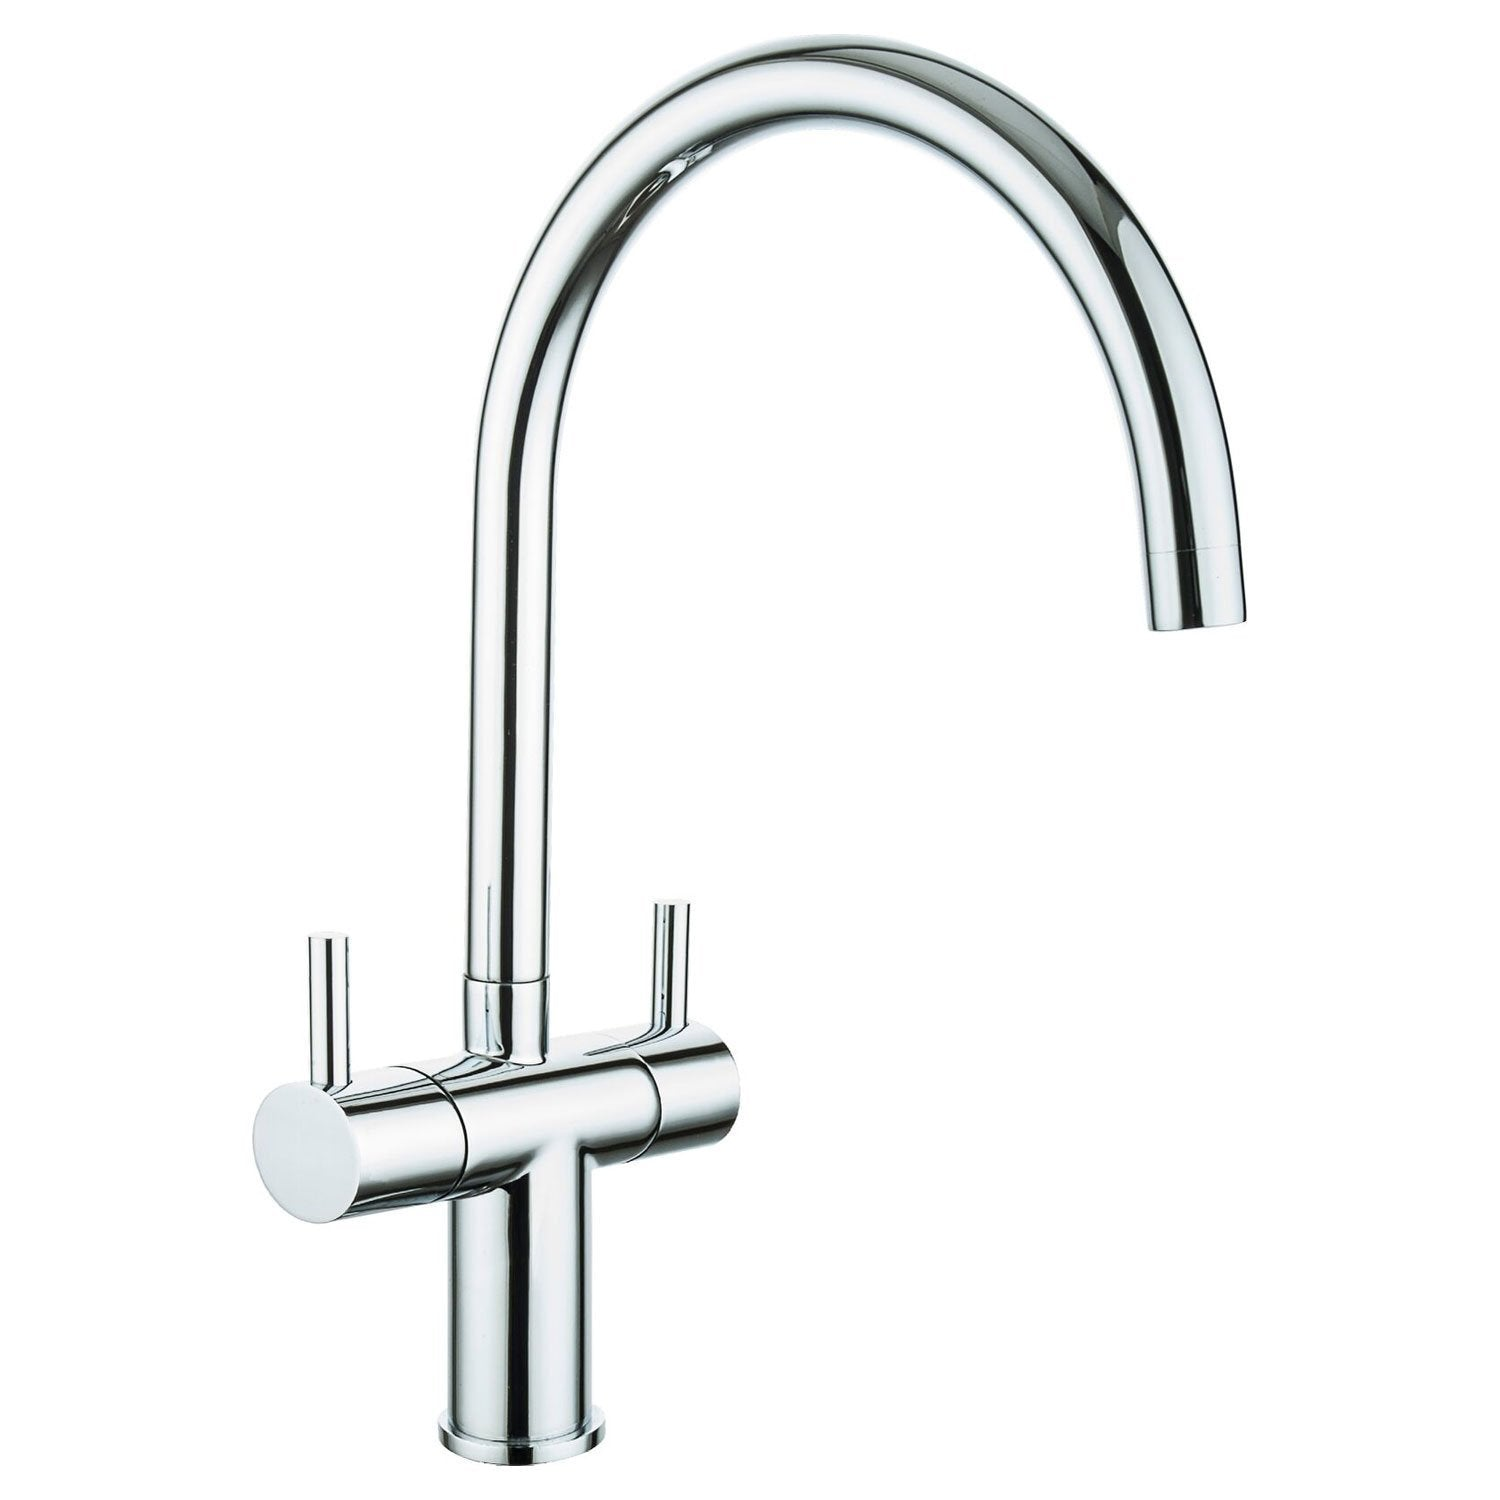 Cassellie Classic Mono Kitchen Sink Mixer Tap - Chrome